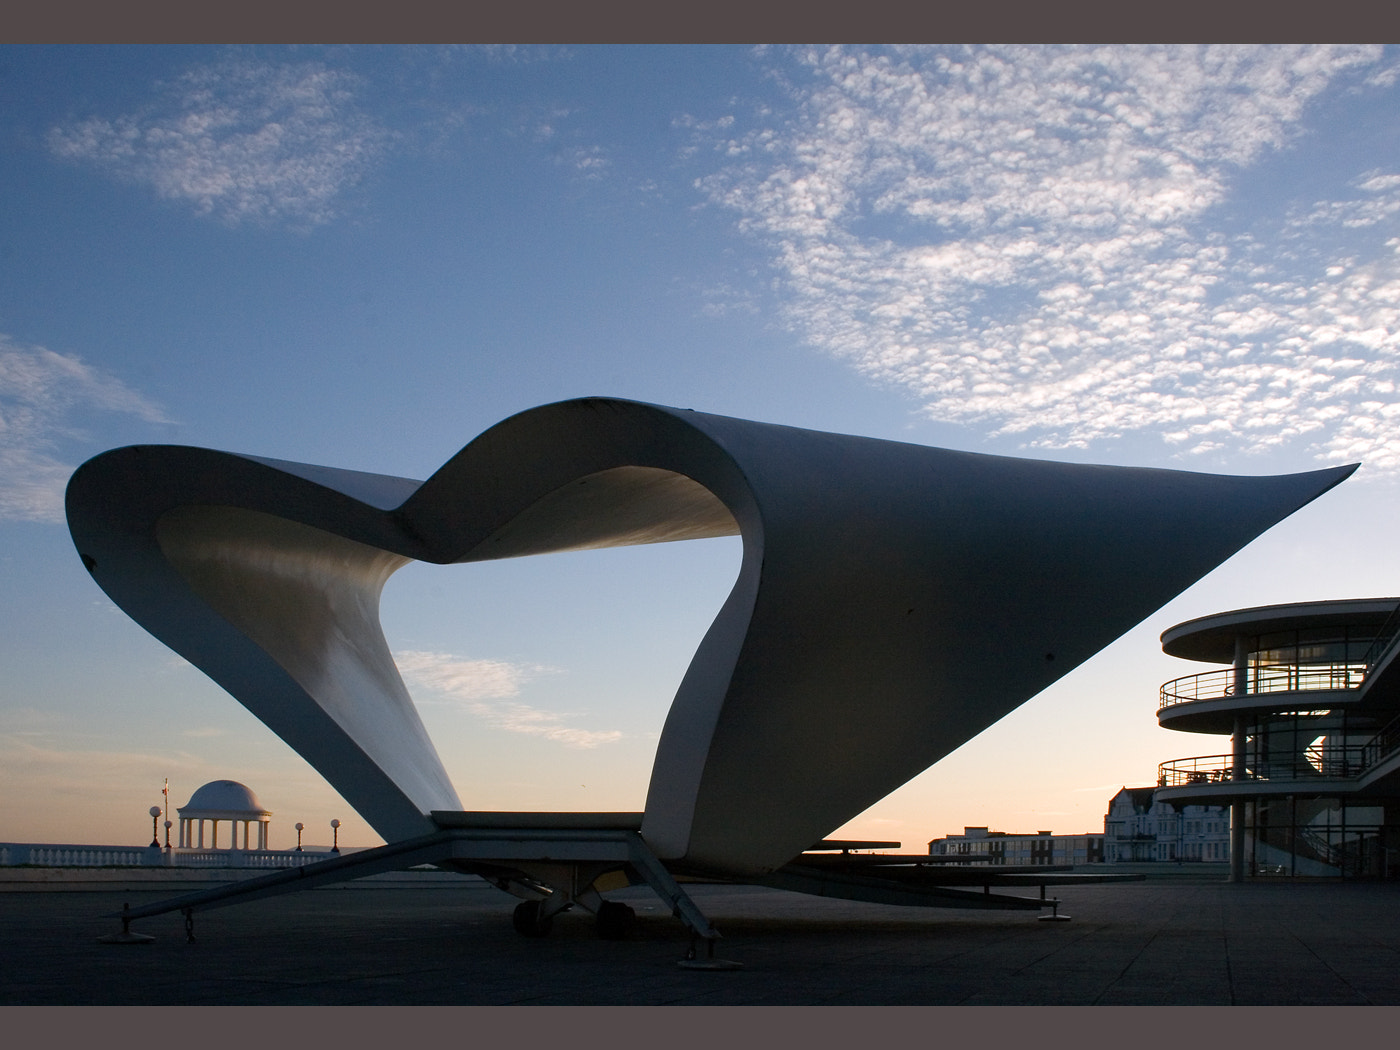 Photograph Bexhill, Architecture by Tony Oliver on 500px